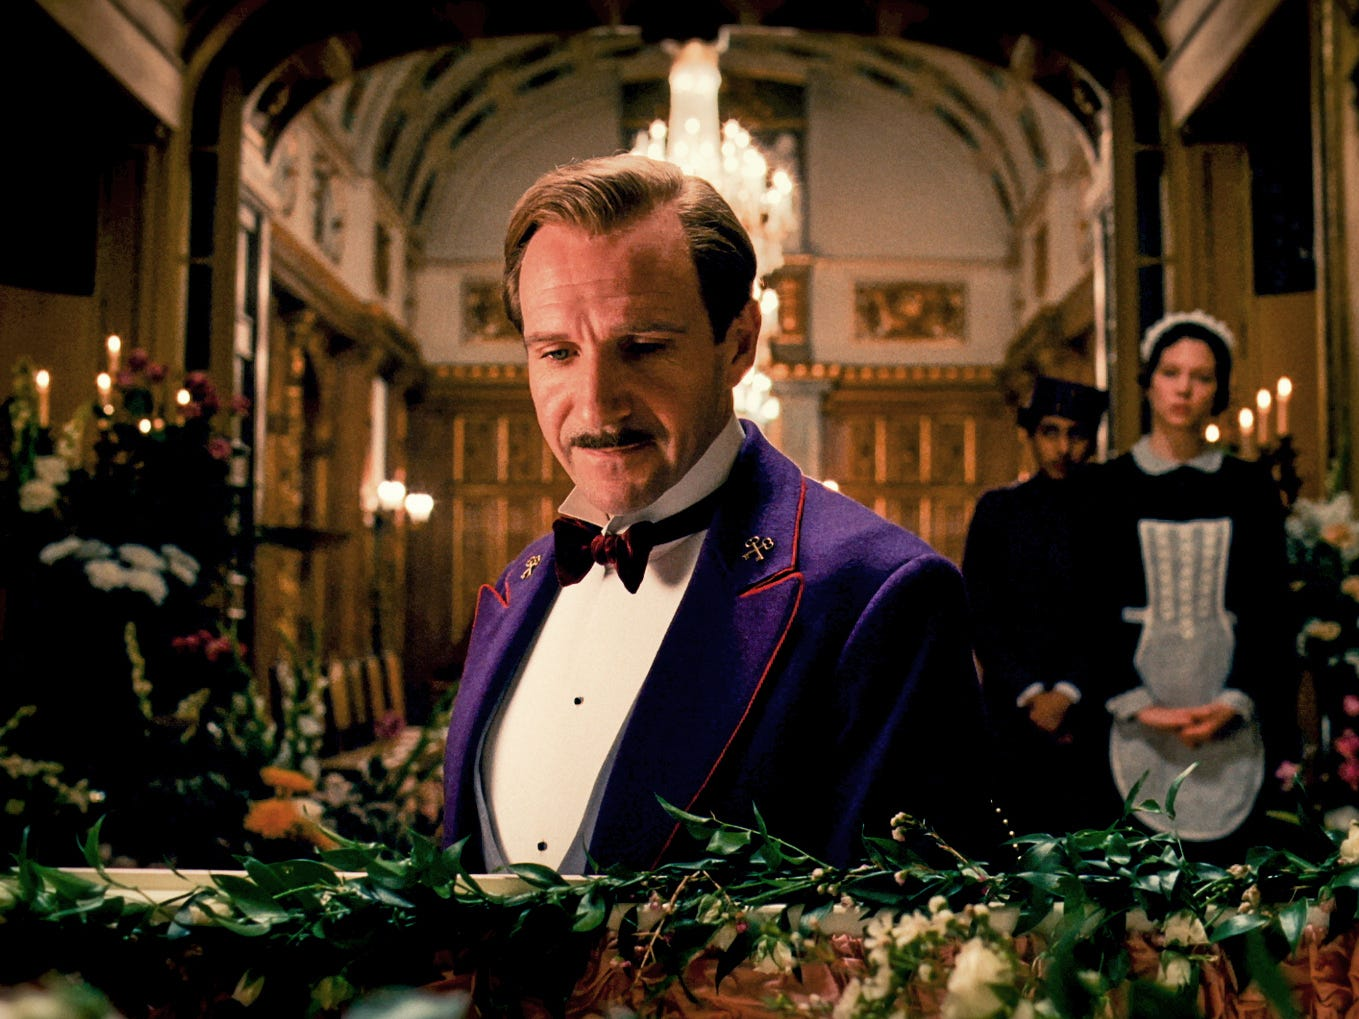 """Since """"Harry Potter,"""" Fiennes has become part of another major movie franchise as M in the James Bond universe. He also earned a Golden Globe nomination for his role in Wes Anderson's """"The Grand Budapest Hotel"""" (pictured)."""